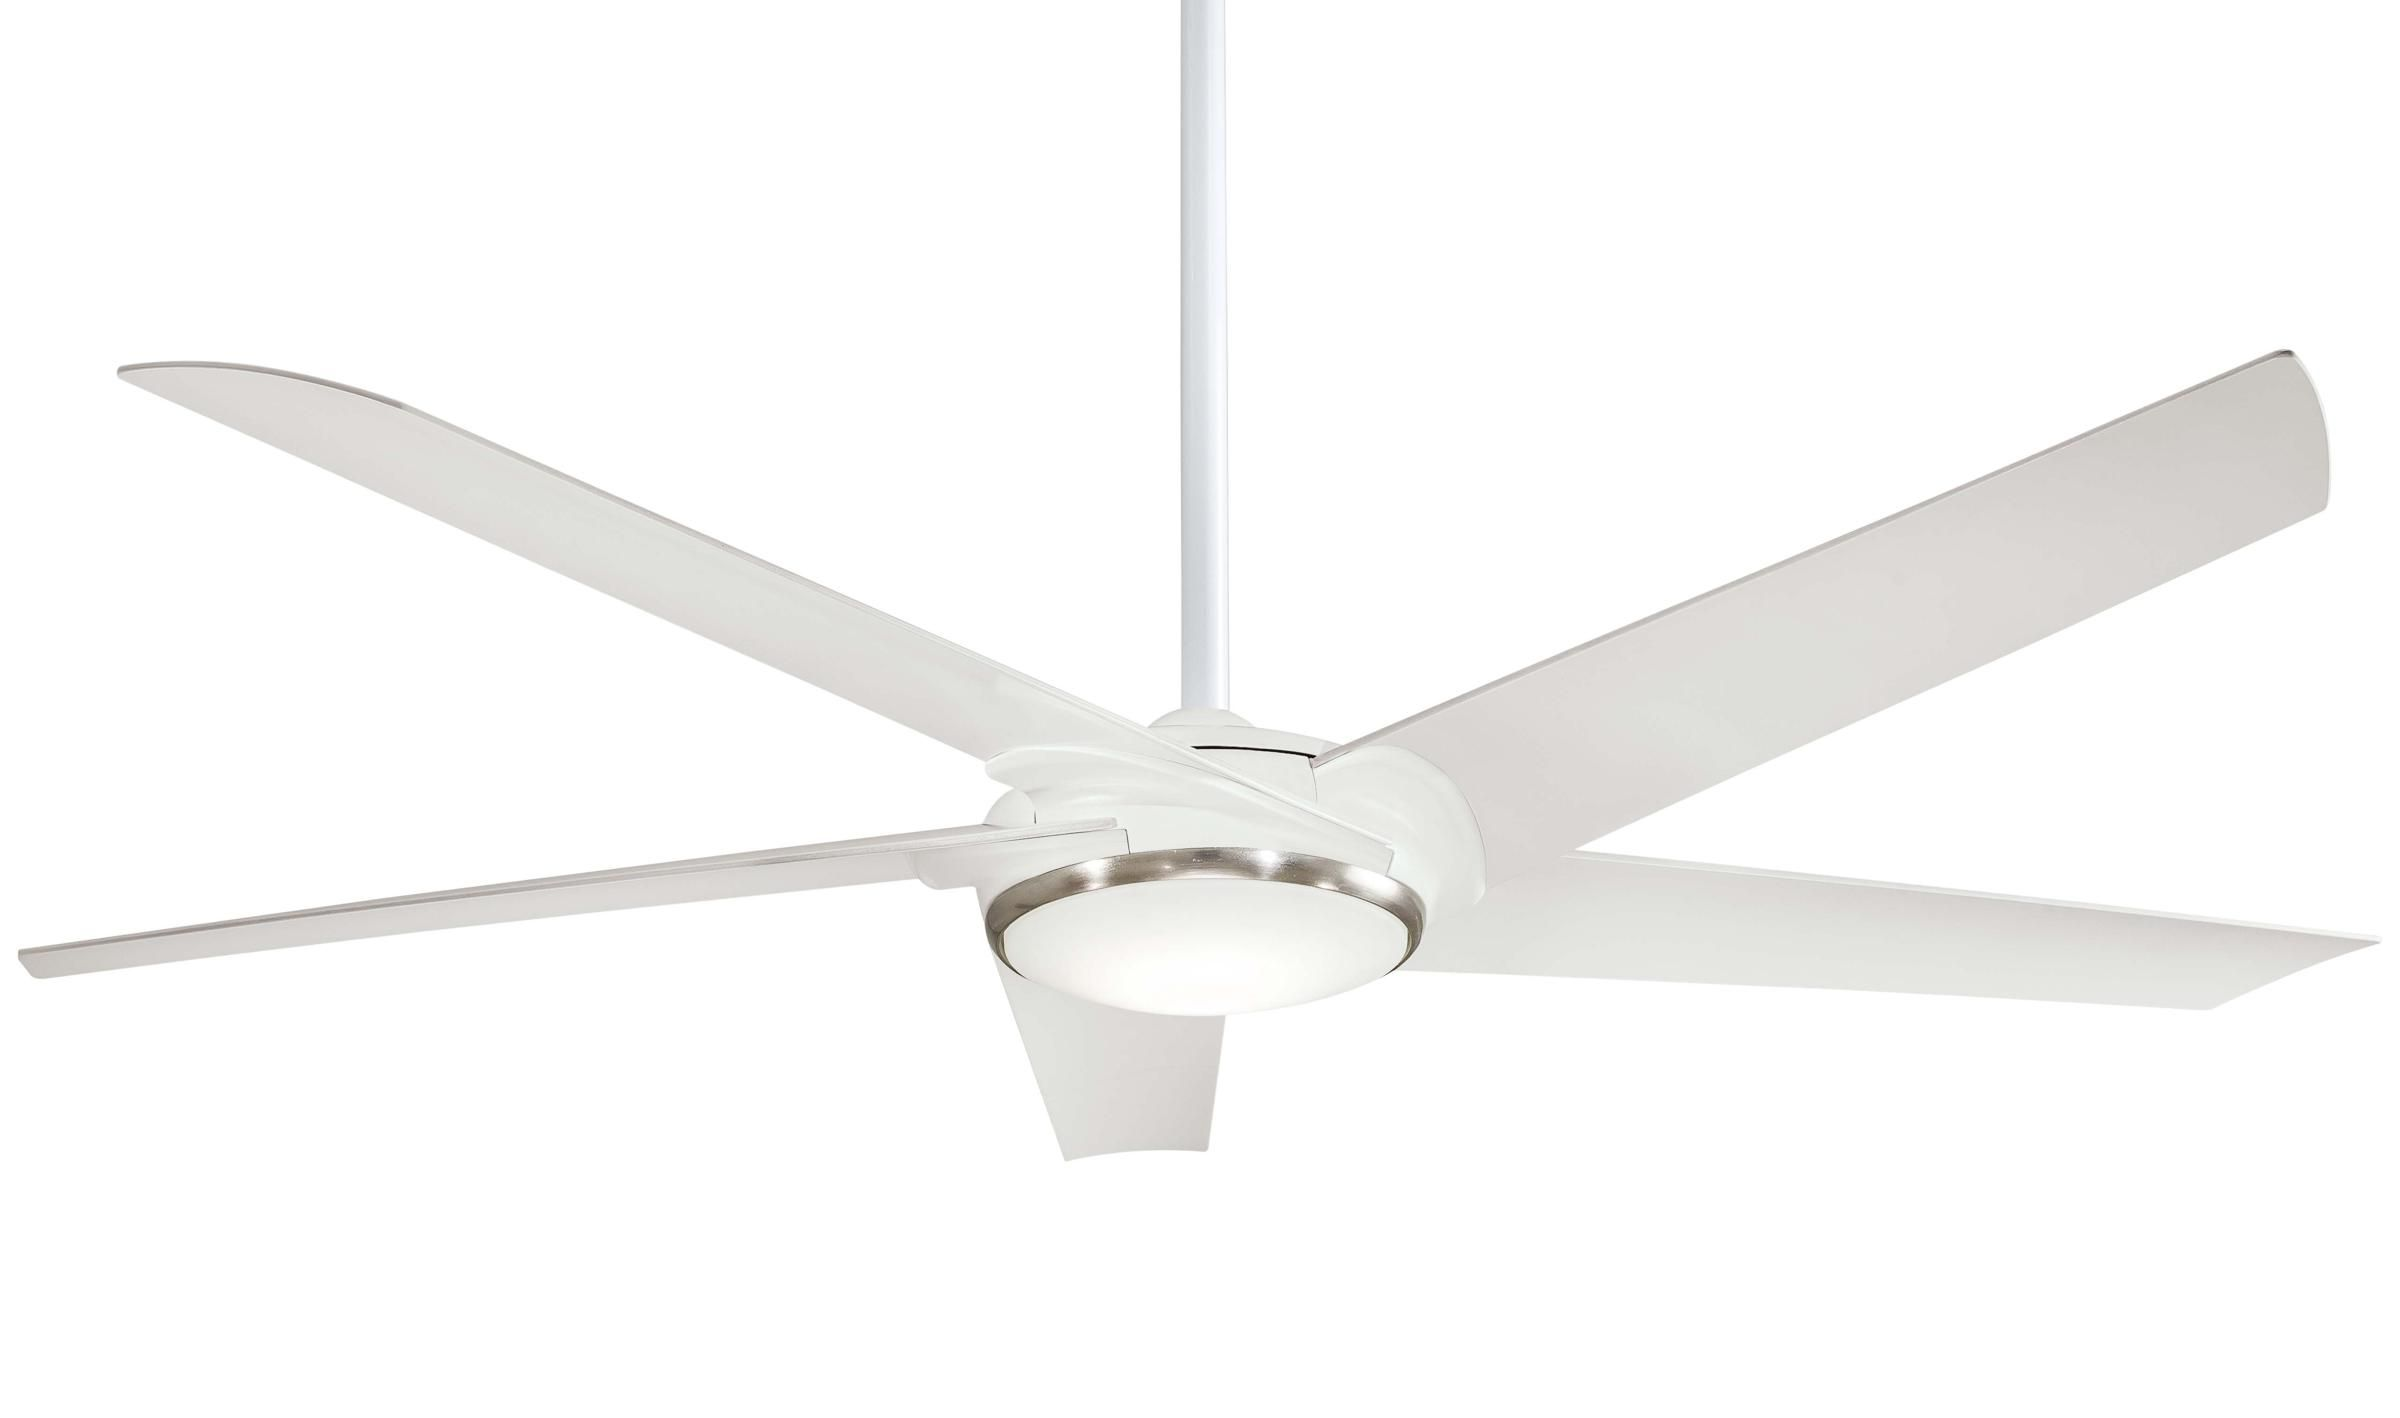 Minka Aire Raptor F617 WH Airflow Rating 6000 CFM Cubic Feet